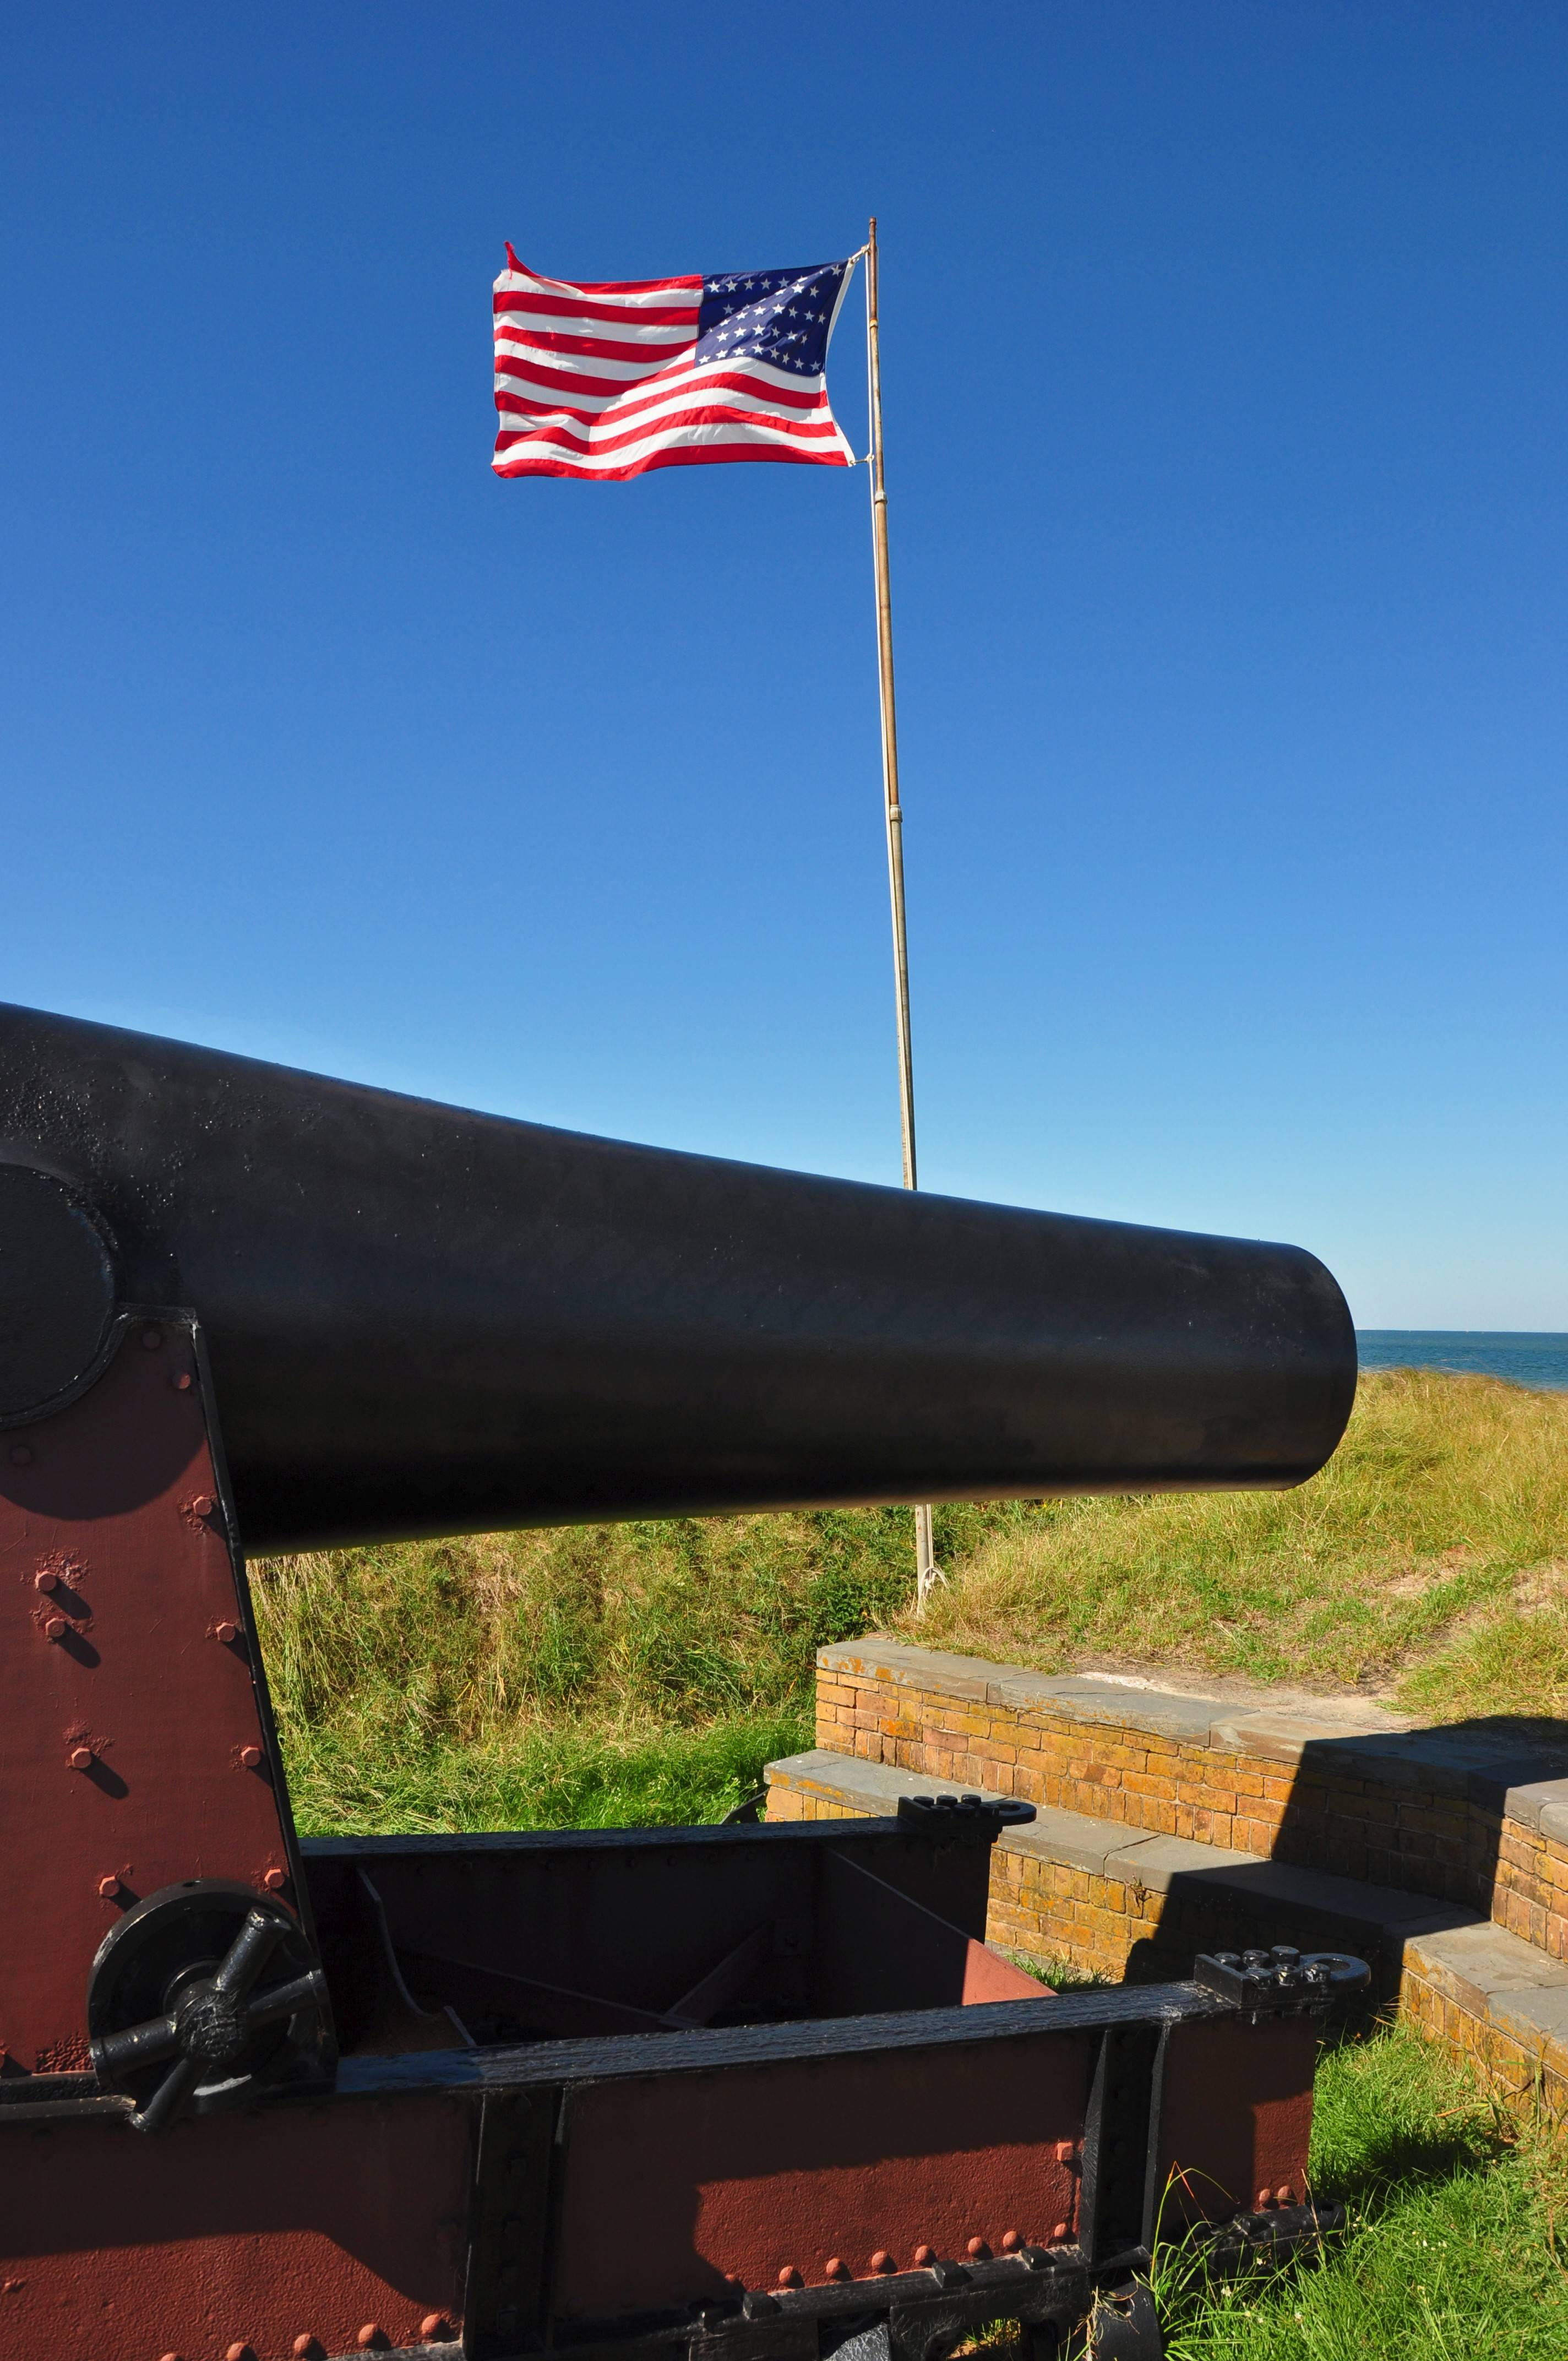 A Rodman cannon has been preserved at Fort Massachusetts, which flies a U.S. flag with 36 stars, the number of states in the Union in 1866.